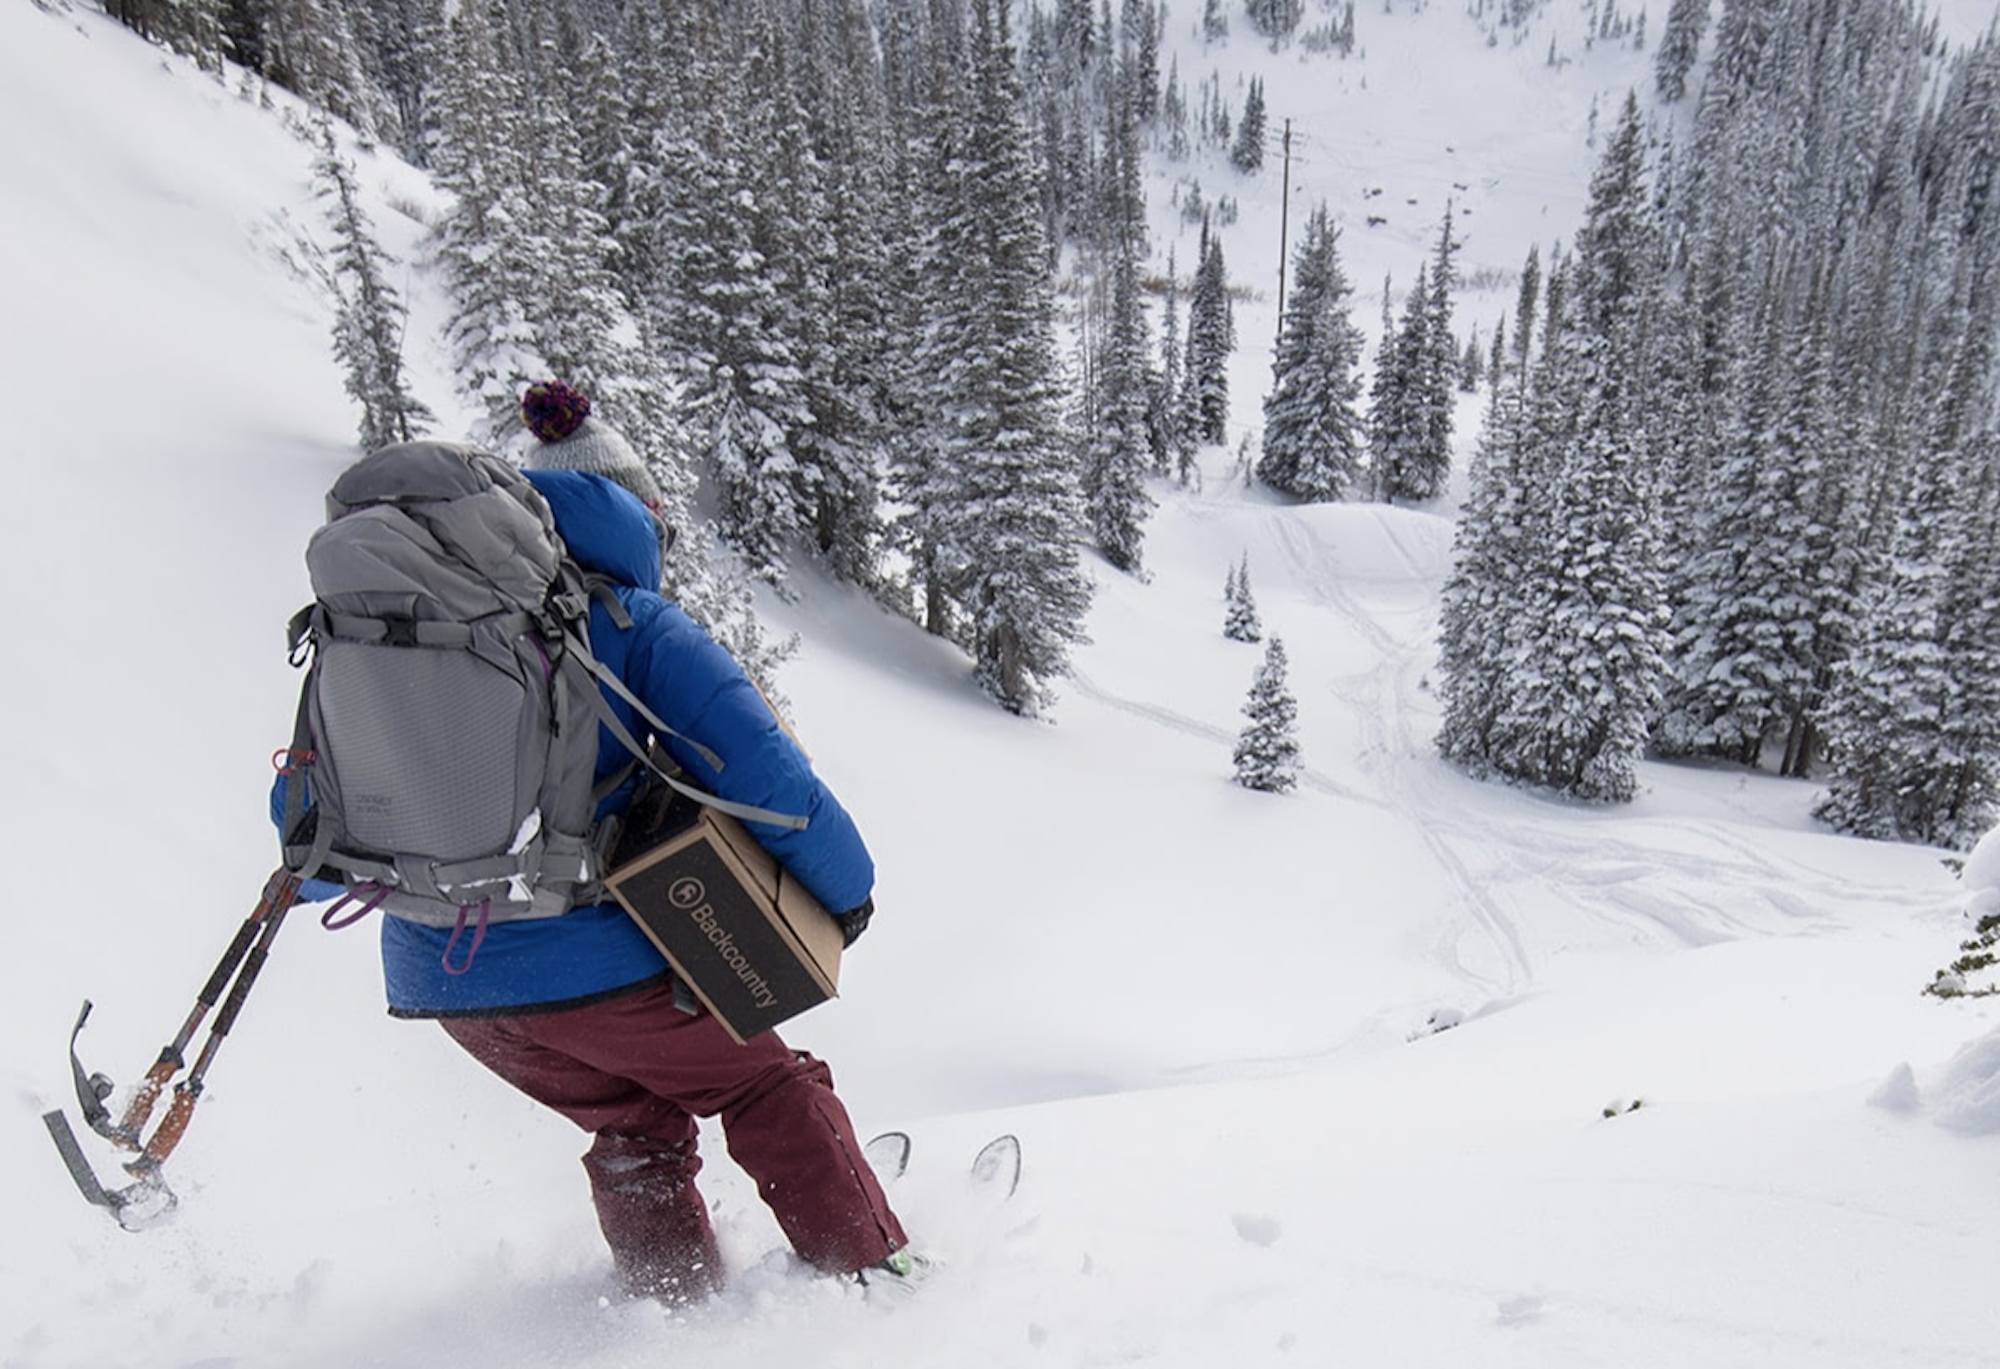 backcountry skier carrying a gift box under arm wearing ski pack and beanie